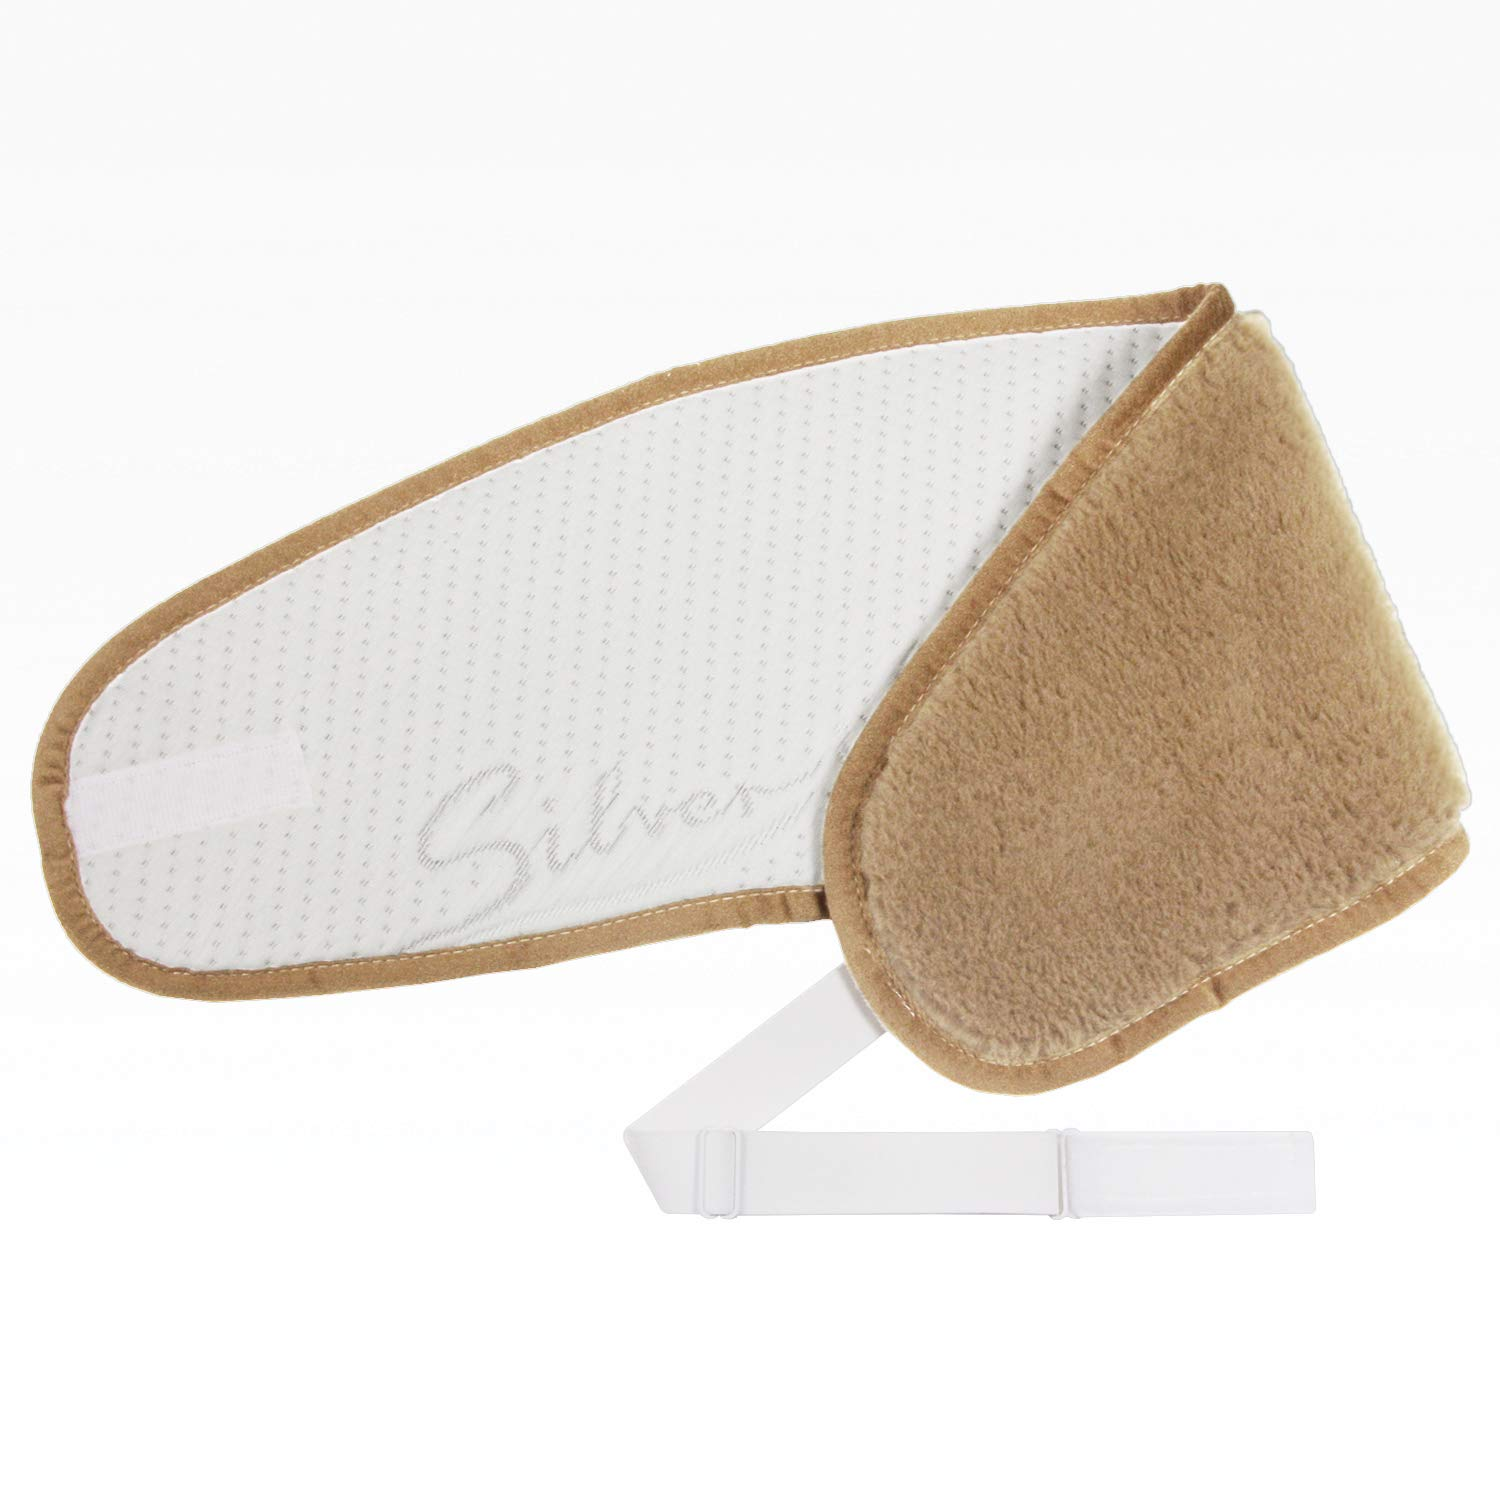 LGL - kidney warmer, 100% natural camel hair, silver LGL GmbH